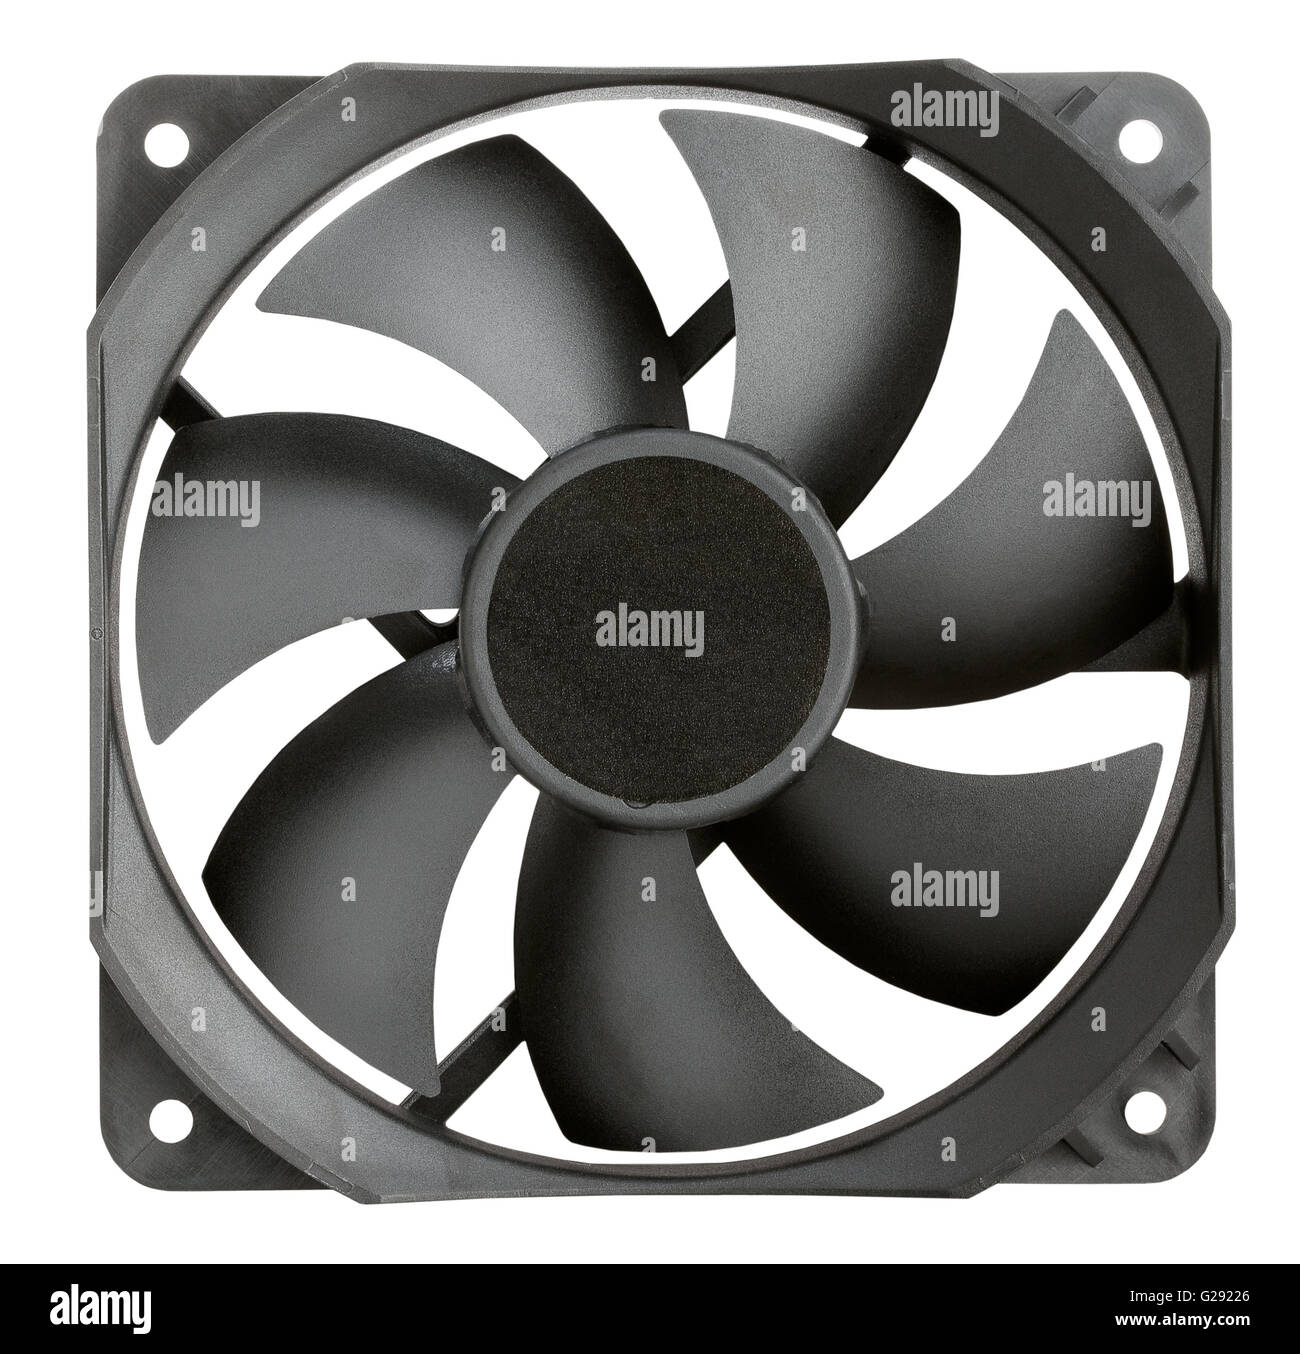 pc cooler fan isolated - Stock Image